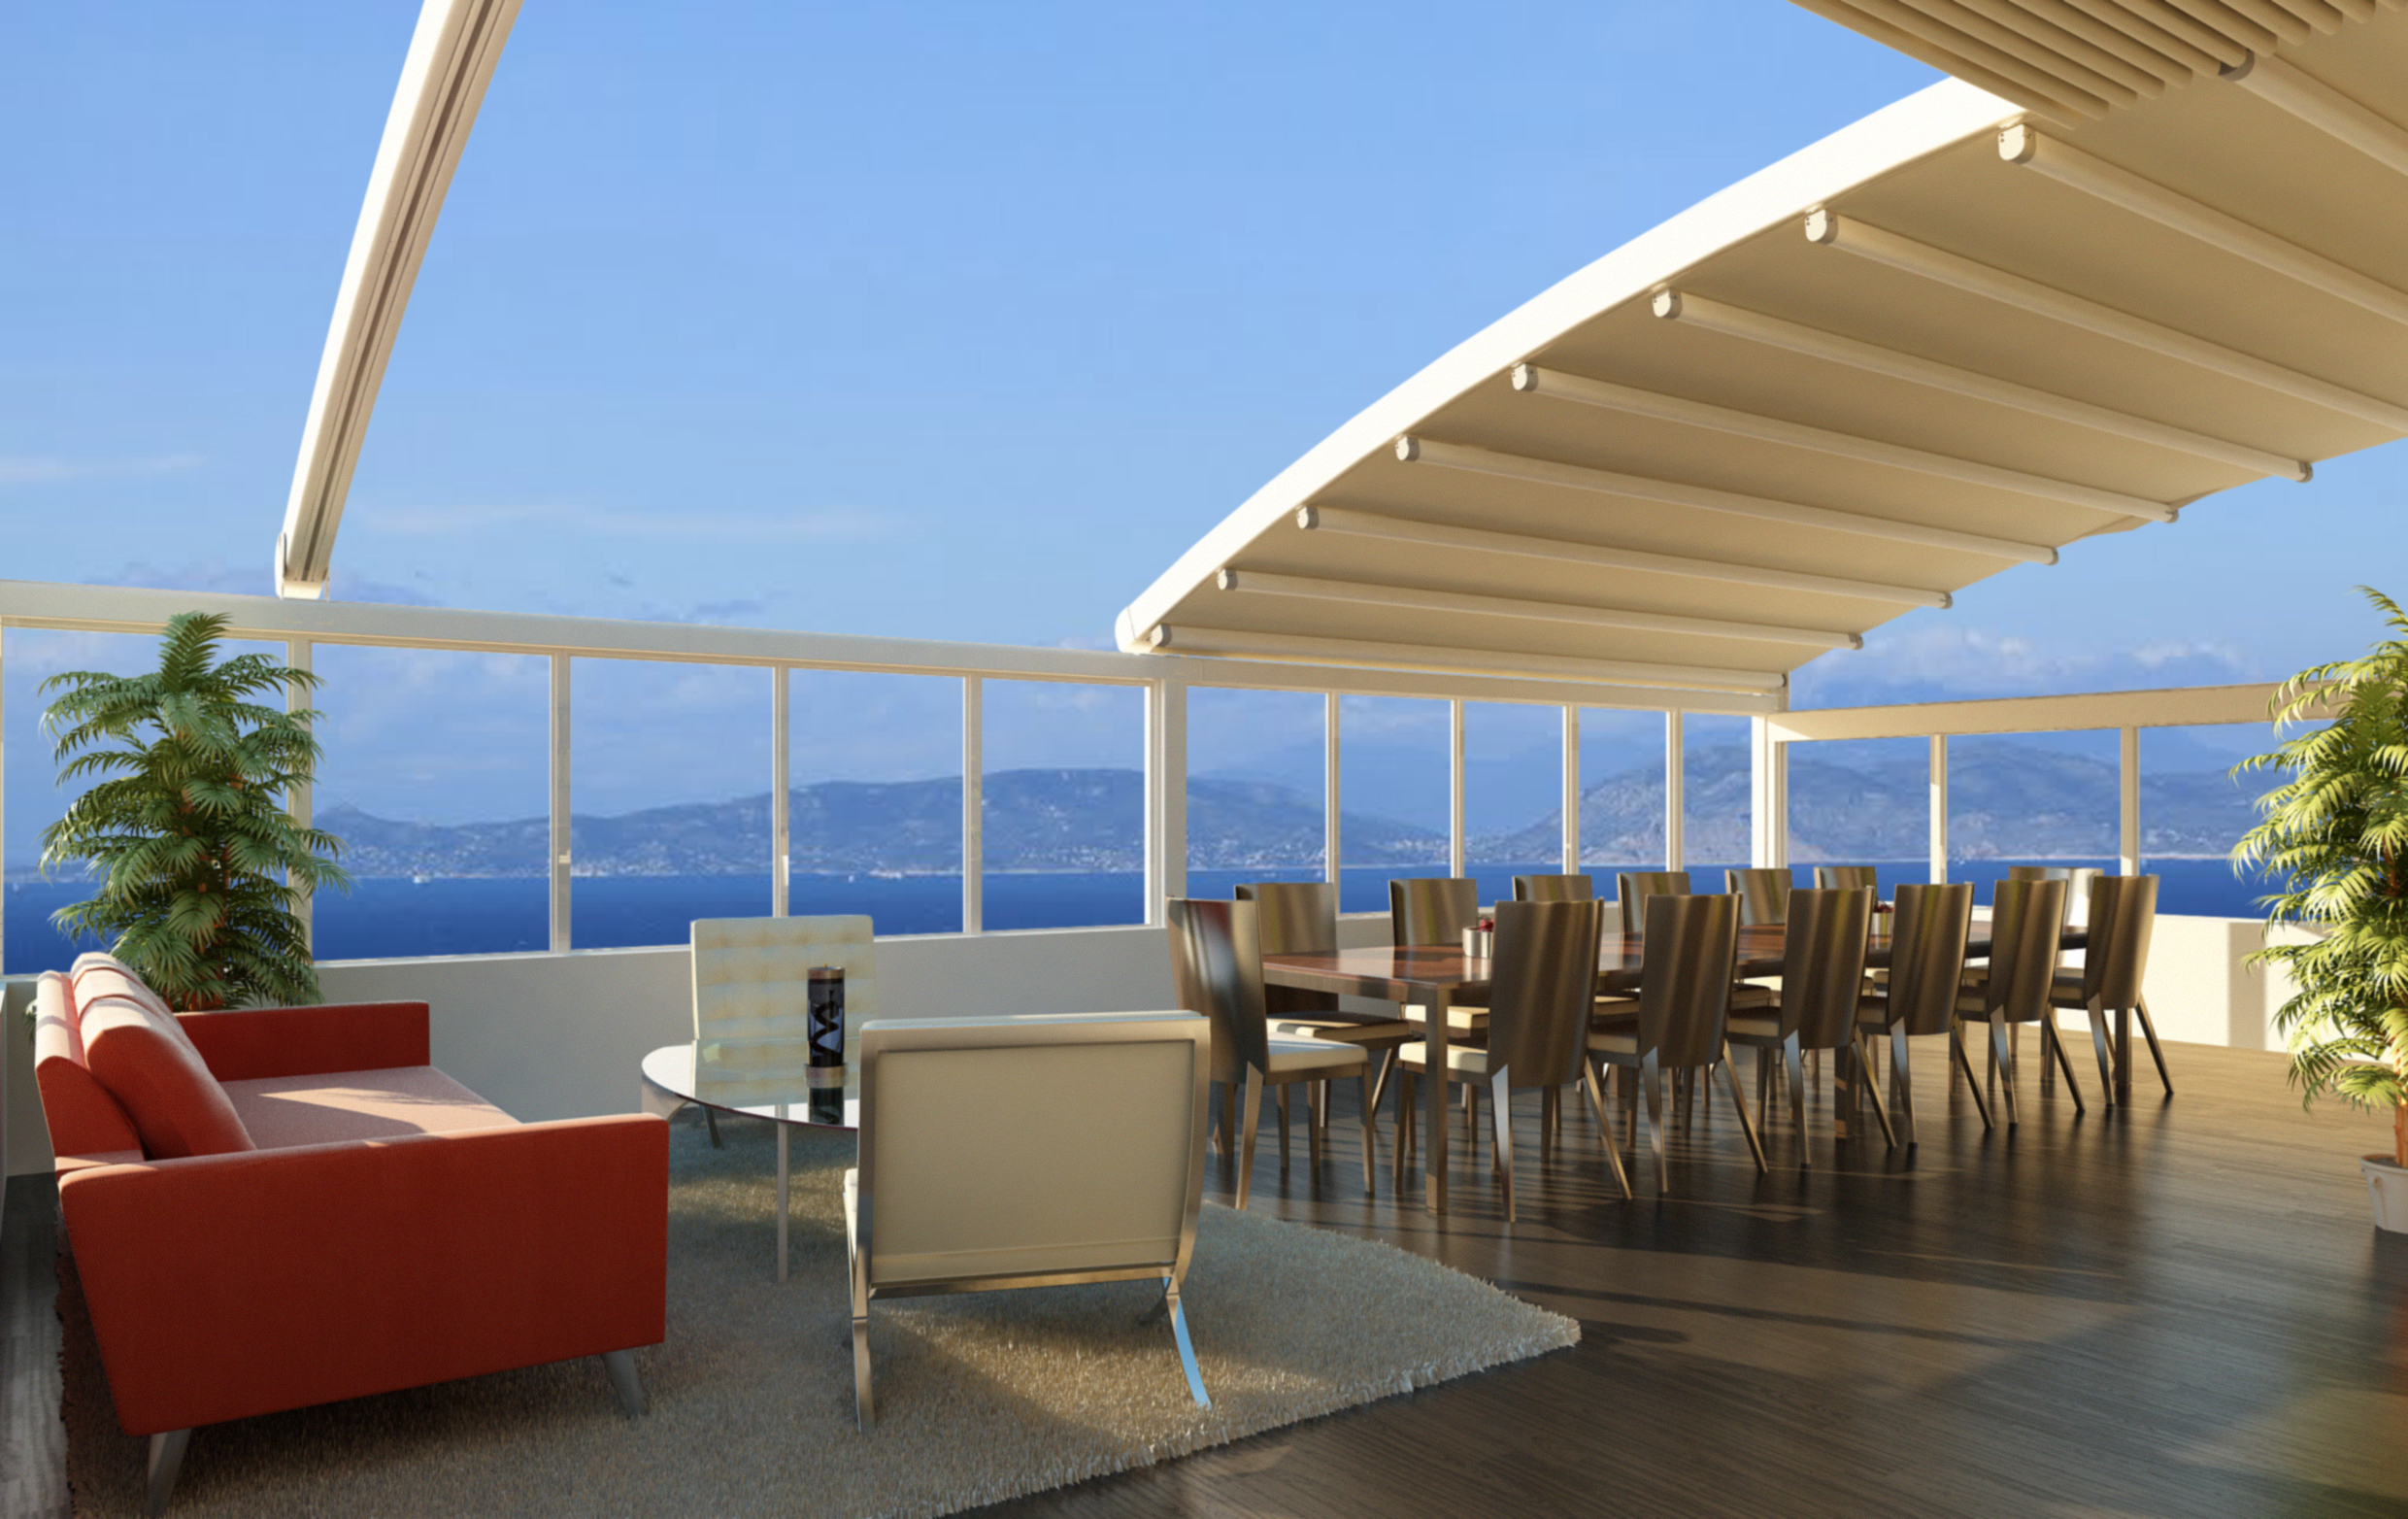 ROOF_ROUND_OPEN_GLYFADA_CC(VIEW2).jpg